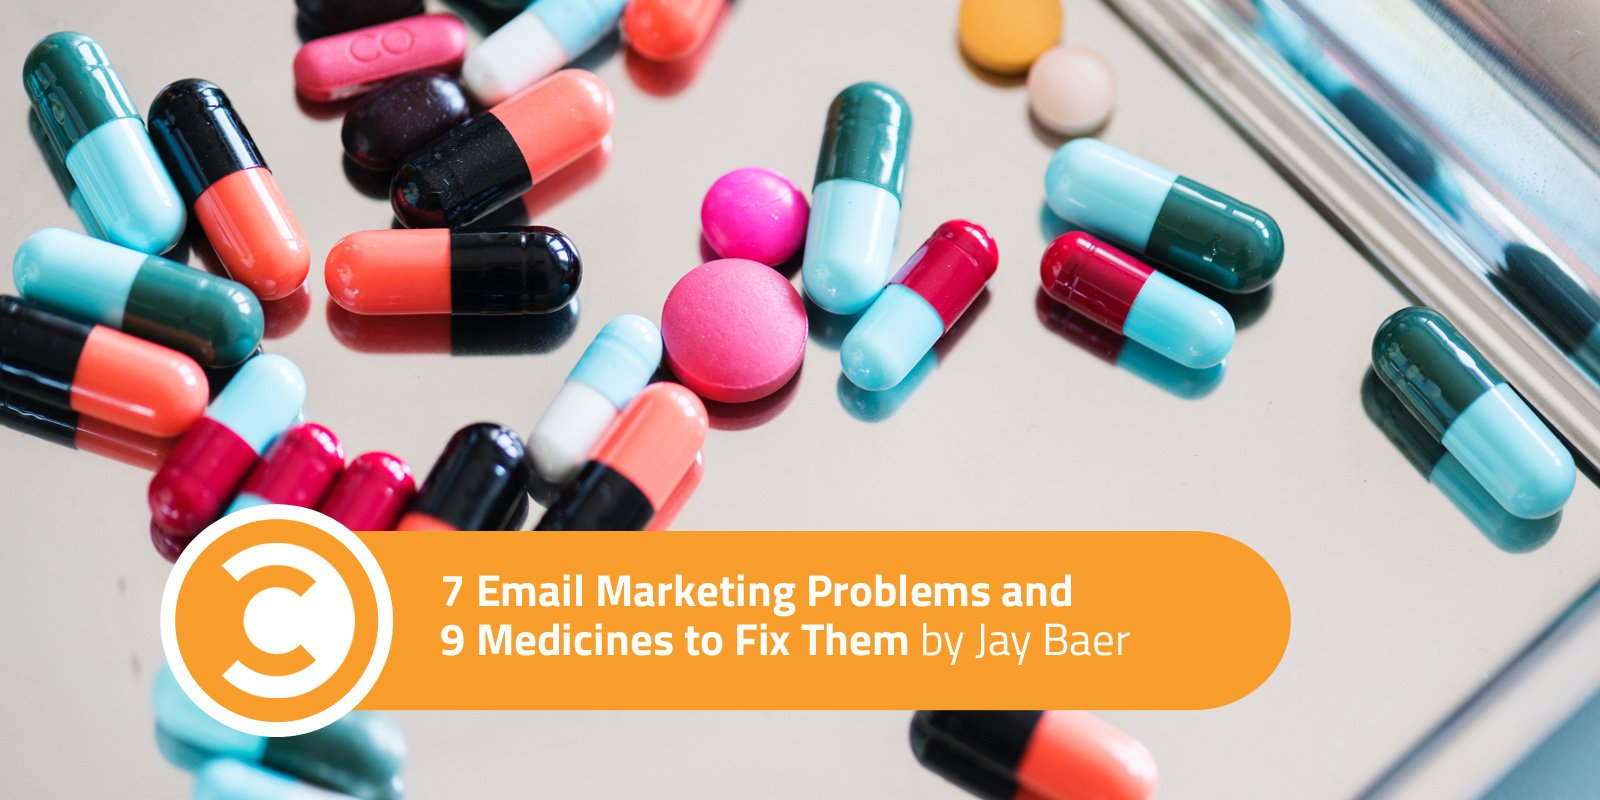 7 Email Marketing Problems and 9 Medicines to Fix Them